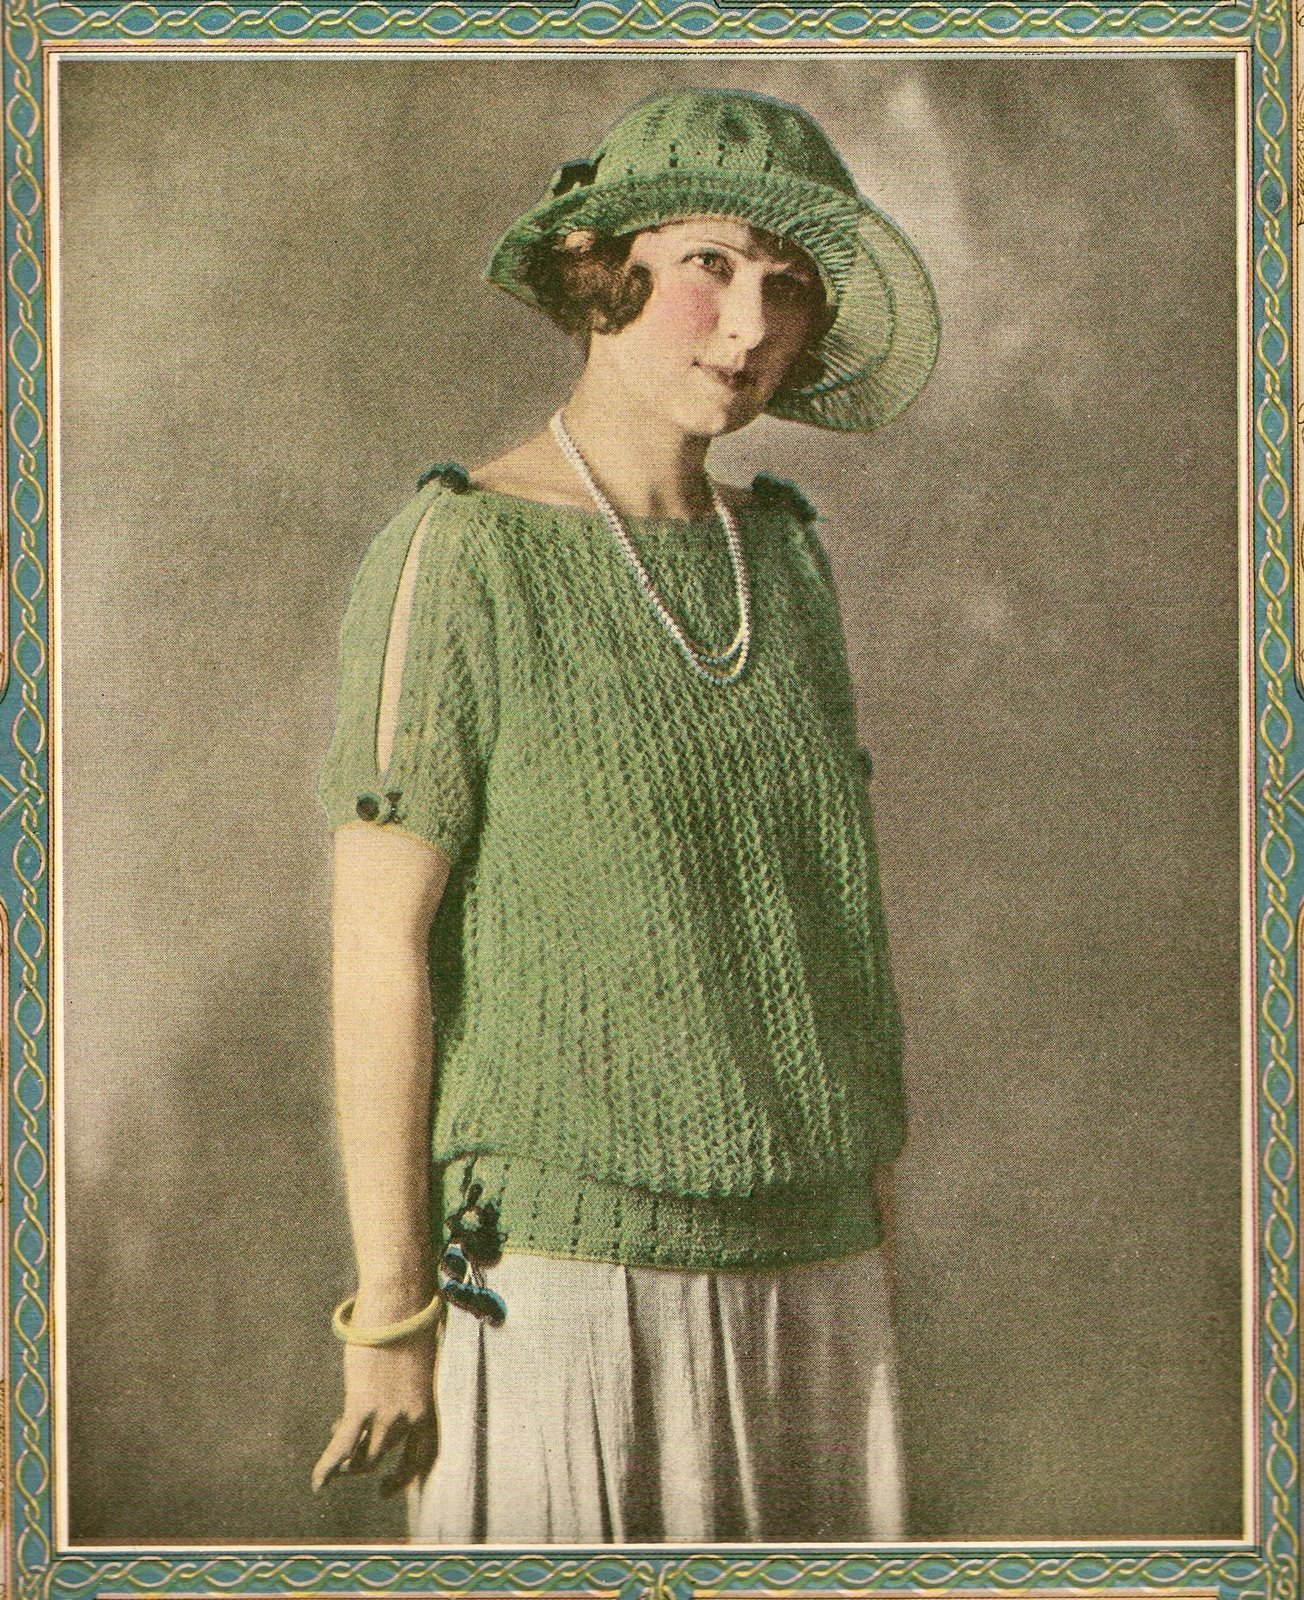 Vintage Knitting Patterns 1920s : The Vintage Pattern Files: 1920s Knitting - A Summer Sweater